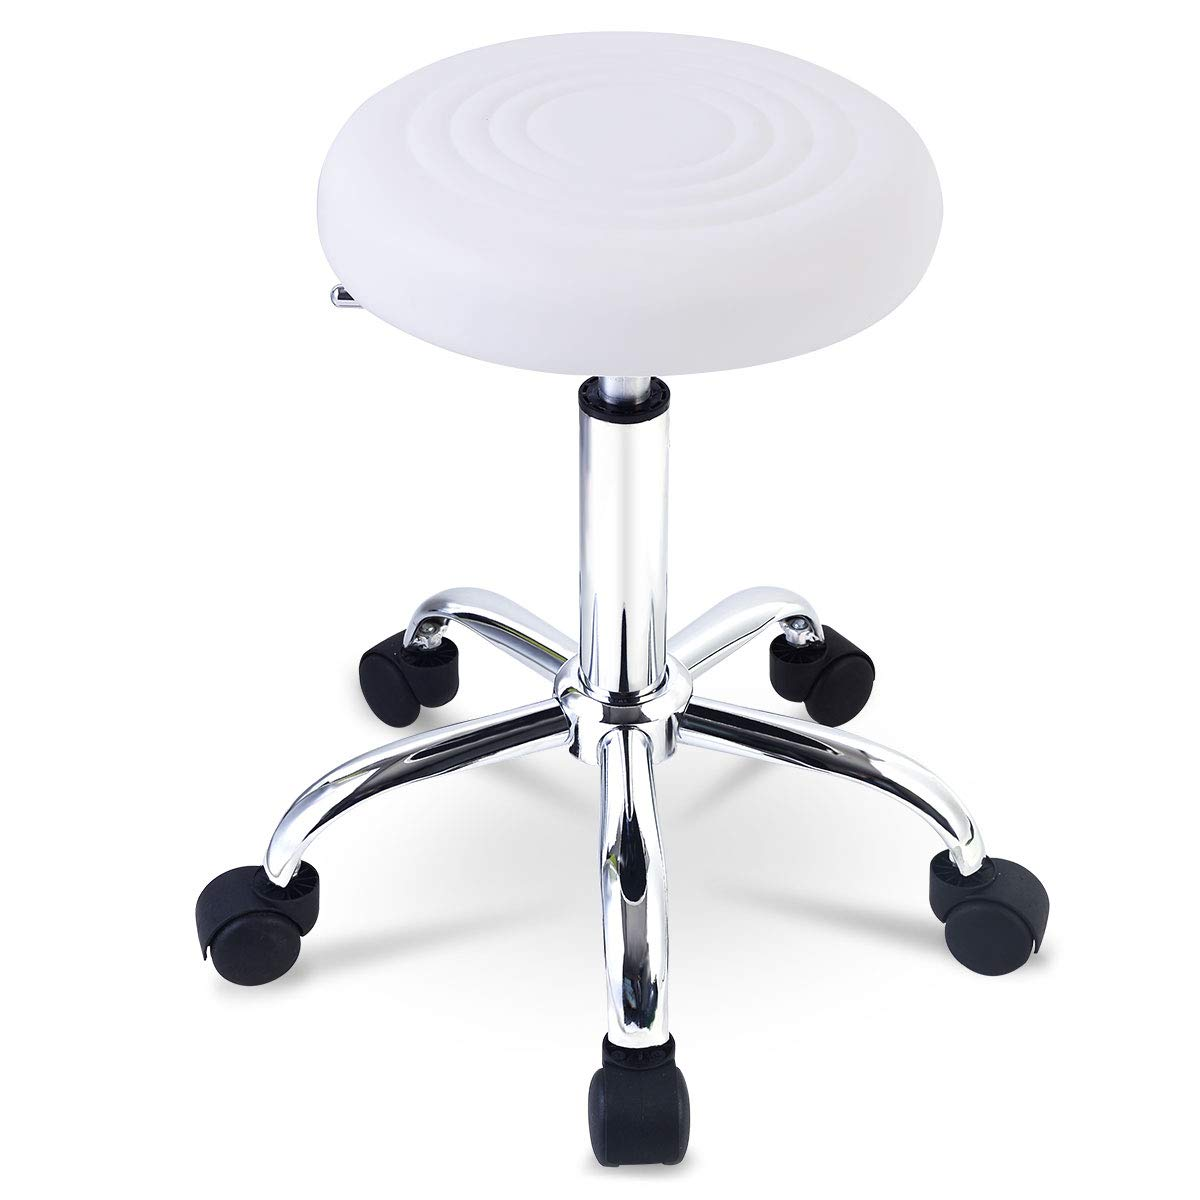 Fabulous Goplus Adjustable Hydraulic Rolling Swivel Stool Tattoo Facial Massage Spa New 1 White Caraccident5 Cool Chair Designs And Ideas Caraccident5Info